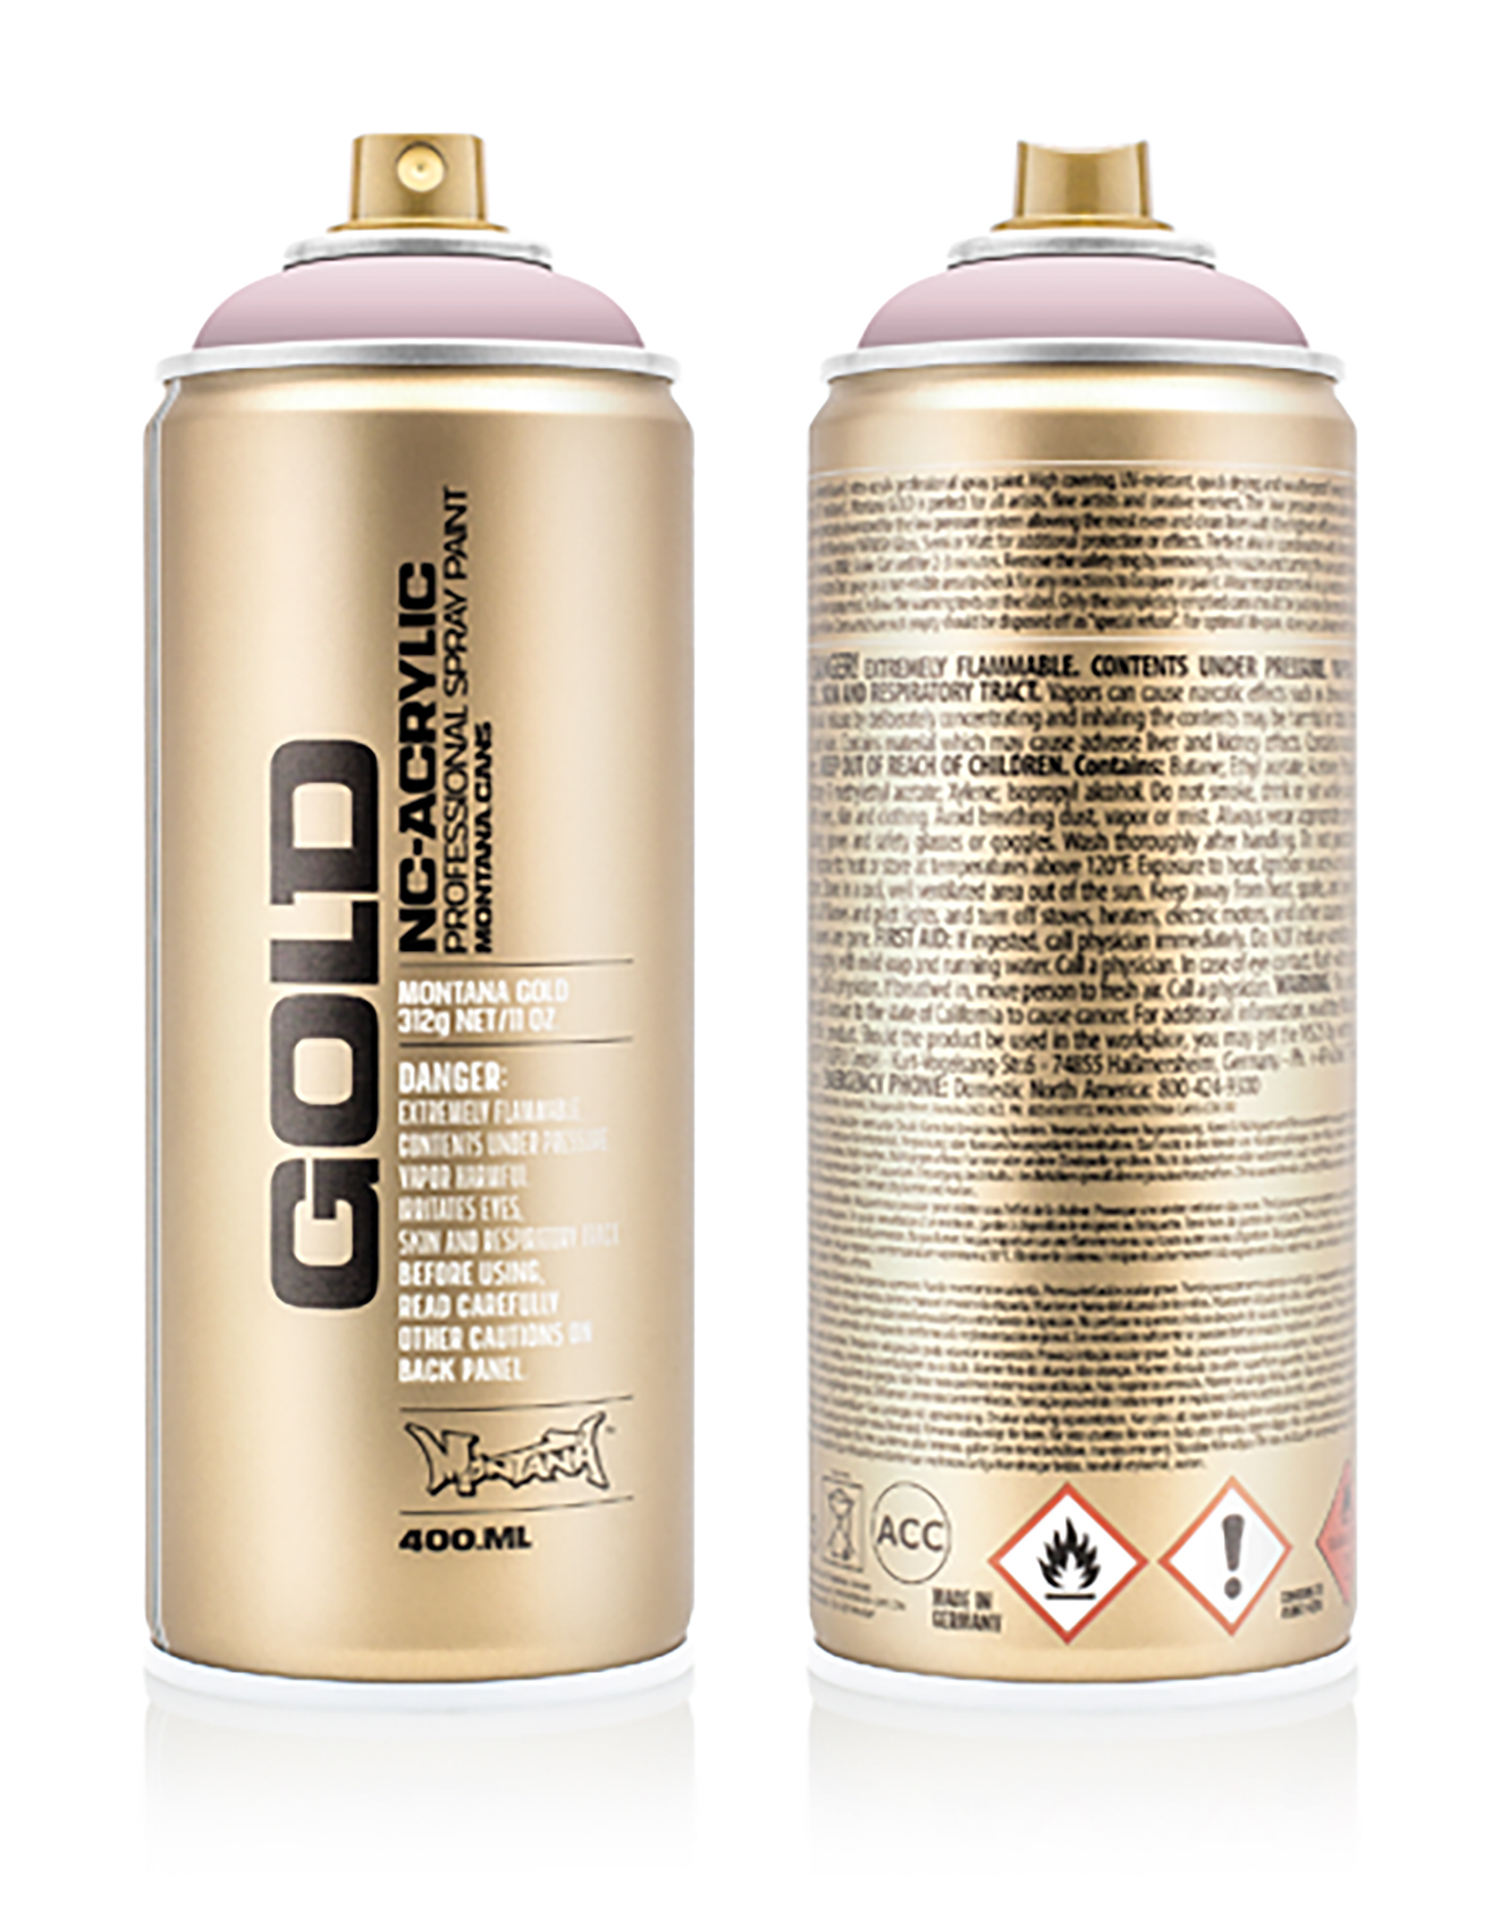 MONTANA-GOLD-SPRAY-400ML-G-4000